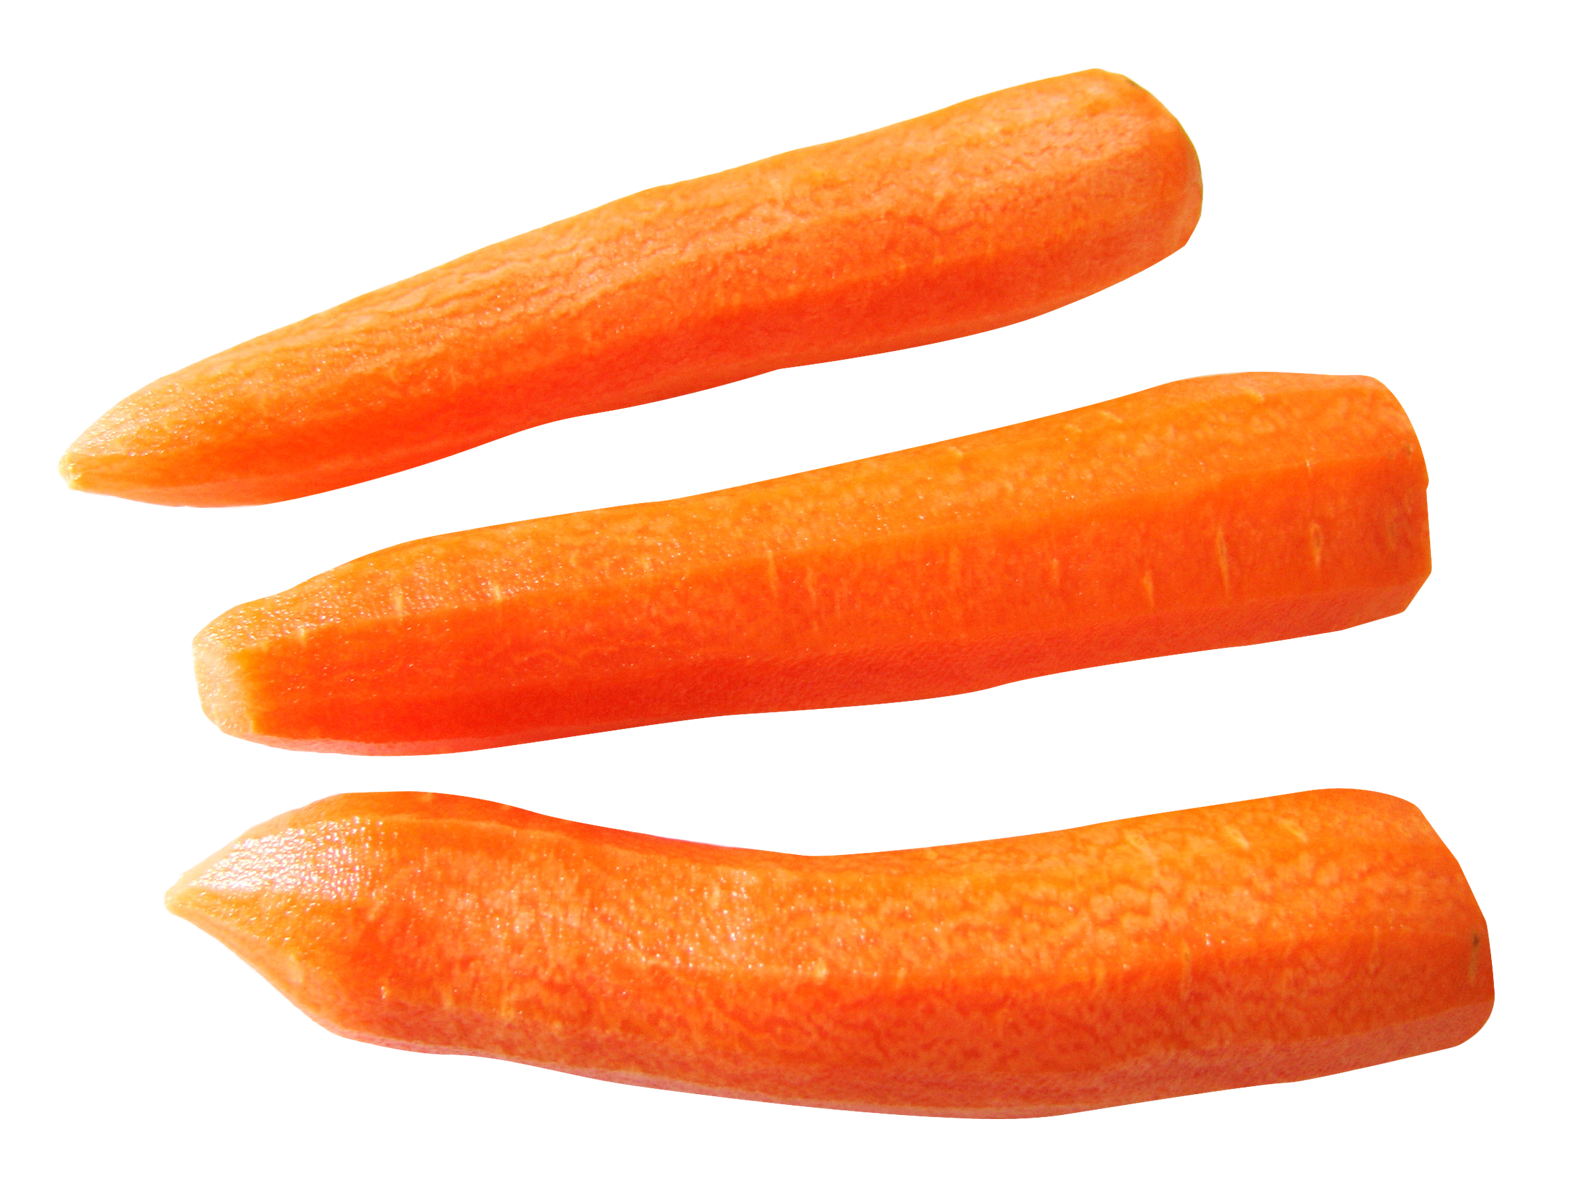 Resolution: 1575 x 1201 | Format: PNG | Keywords: Vegetables, Slice, Carrot,  Baby Carrot - Carrot HD PNG